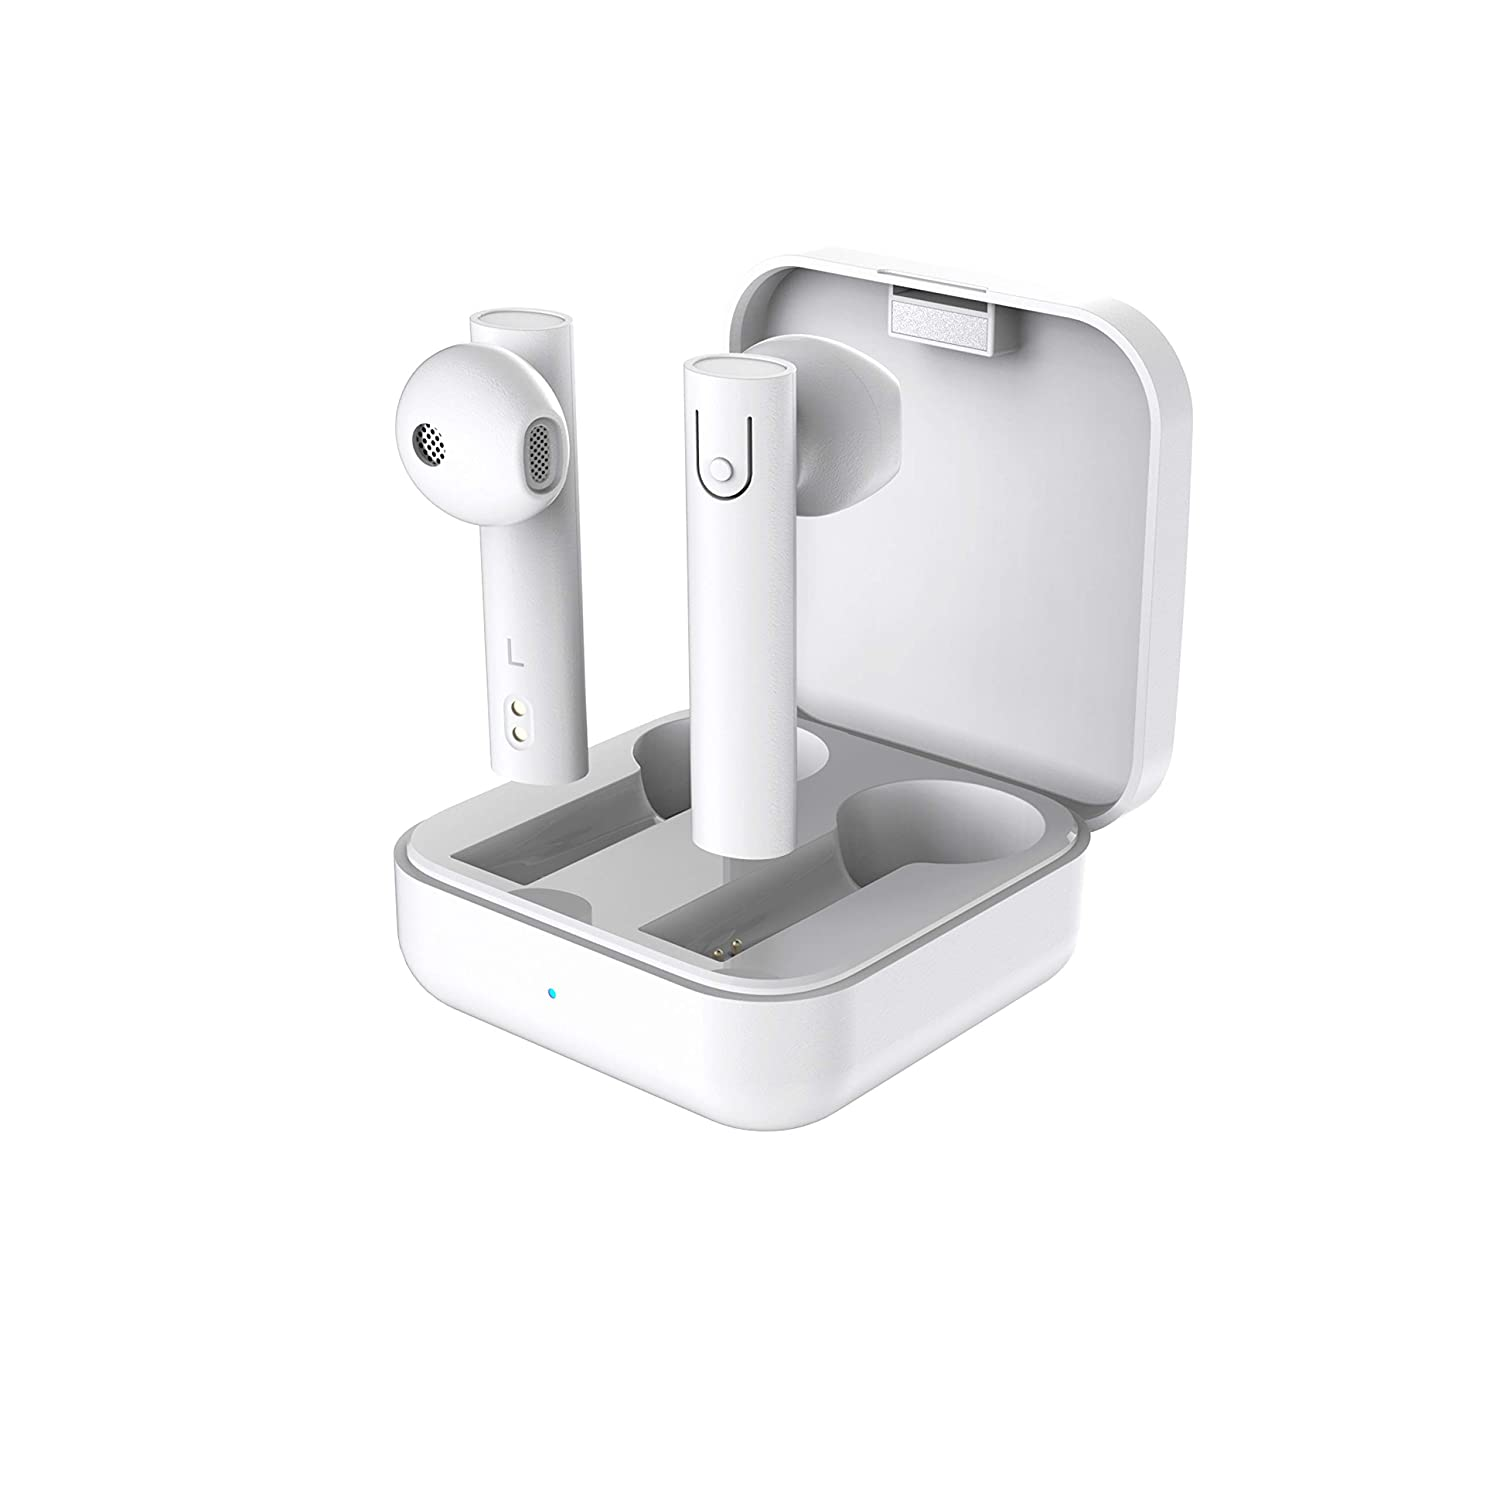 SNOKOR by Infinix iRocker Stix (White) True Wireless Earphones with 14.2mm Dynamic Bass Boost Driver, Type C Quick Charging, Up to 16hrs Playtime, Bluetooth v5.0 and Ultralight Buds